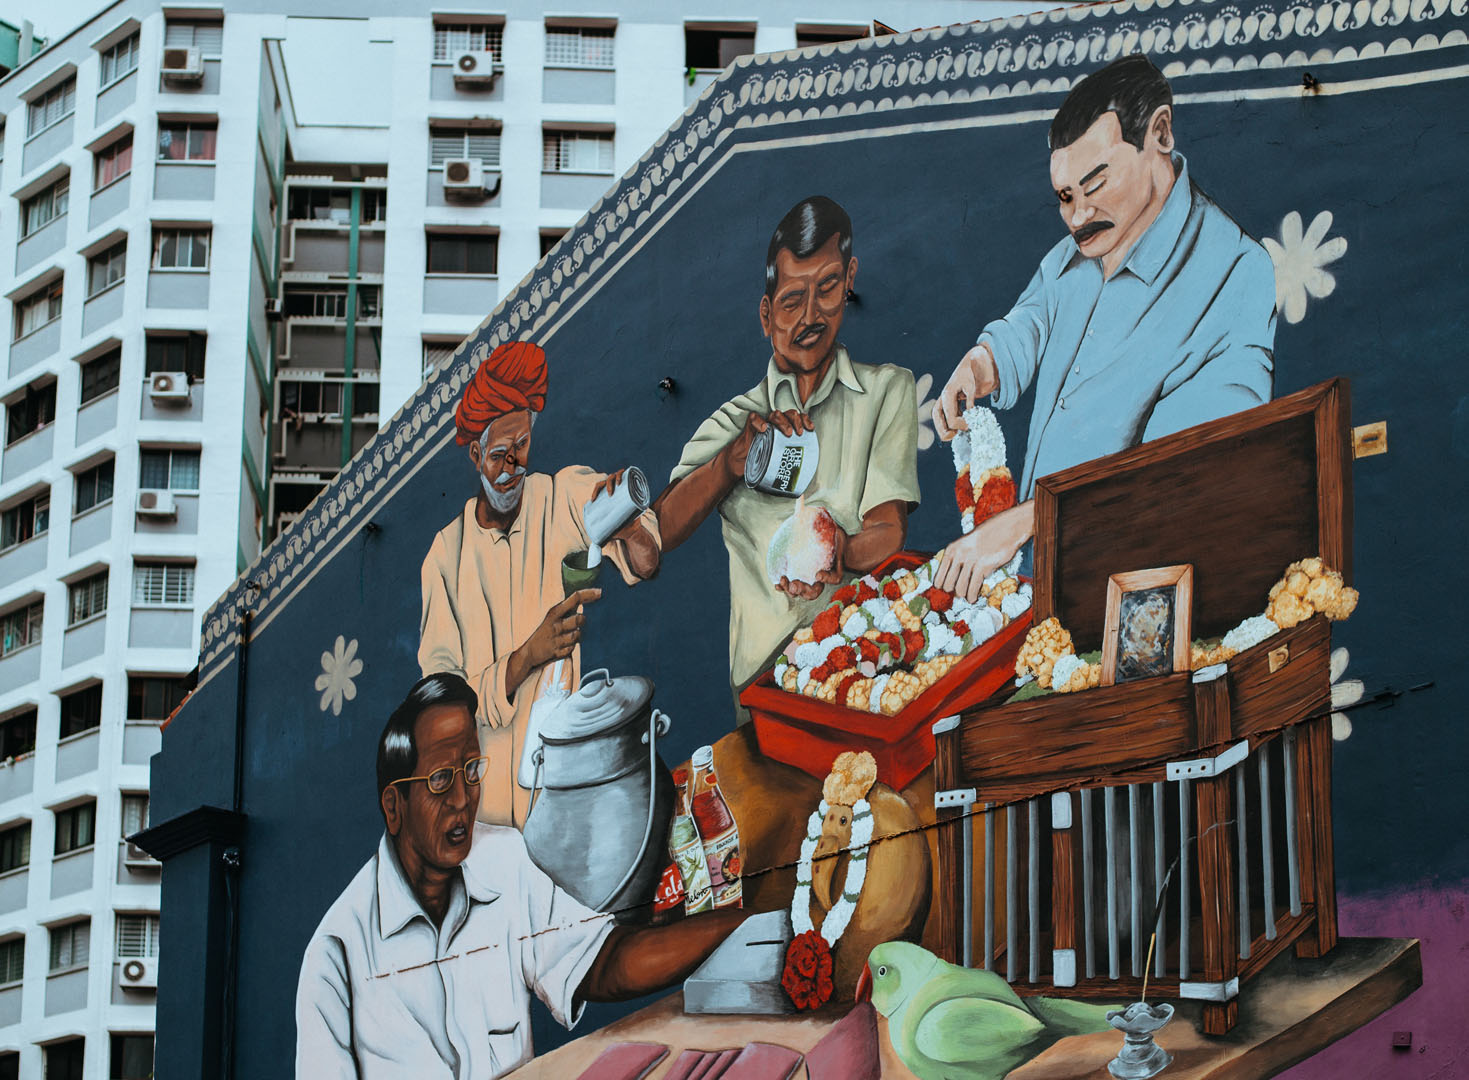 6 Ways to Check Out Street Art in Singapore